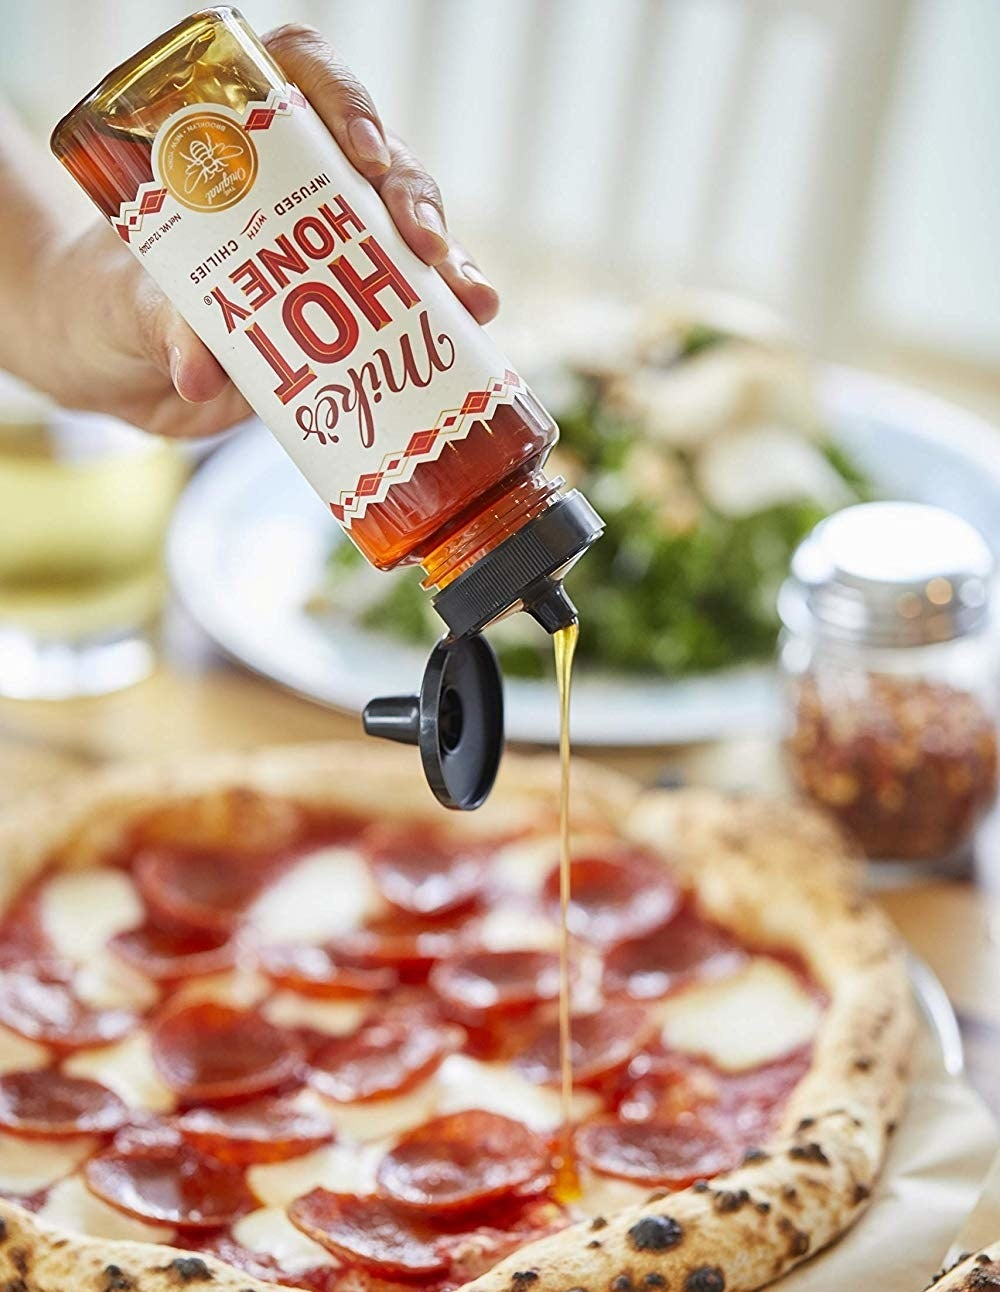 A bottle of Mike's Hot Honey being poured onto a pizza.